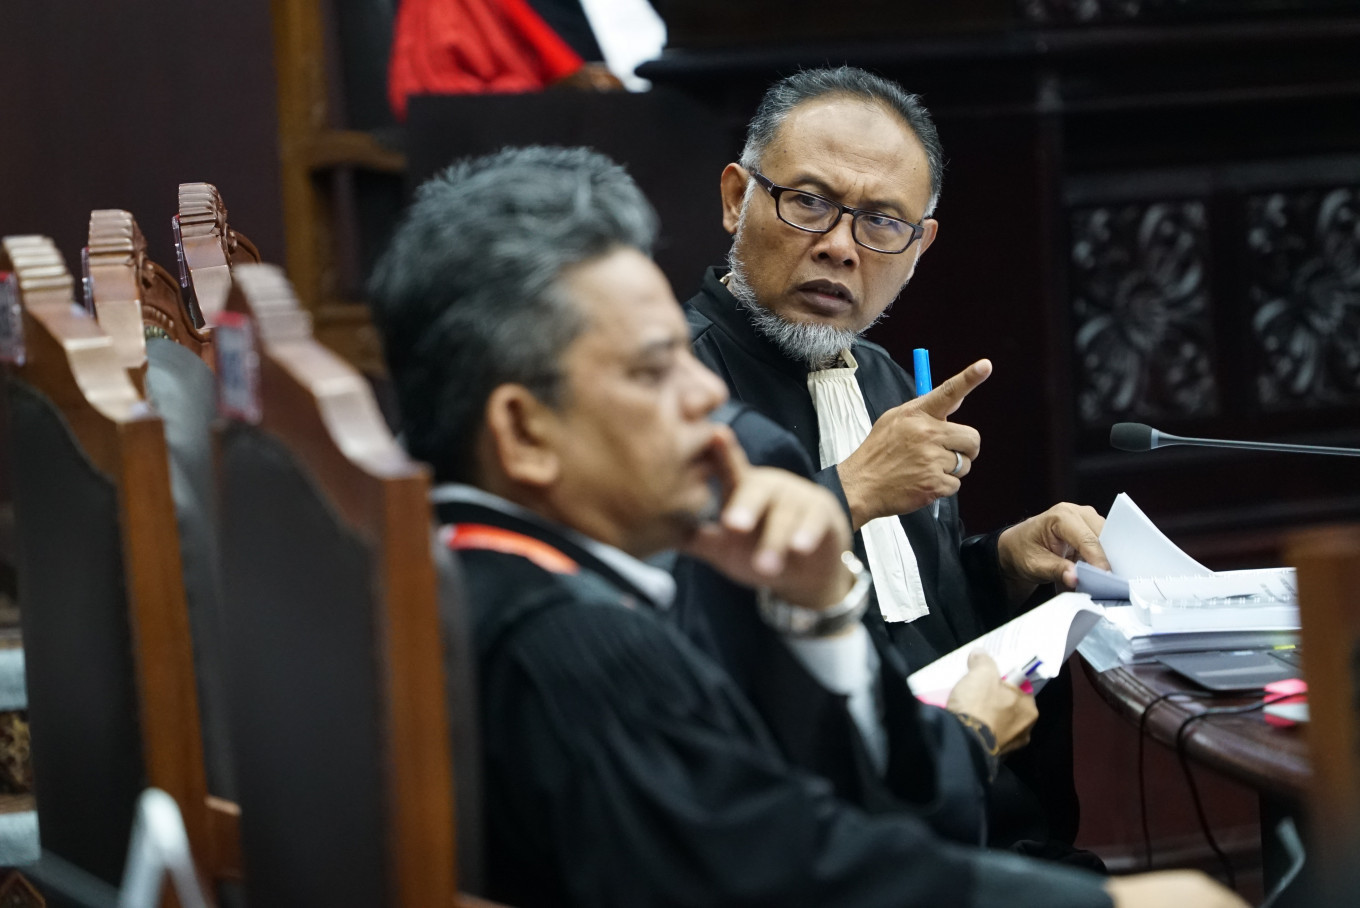 Prabowo's lawyer accuses Jokowi of using state funds to 'influence voters'